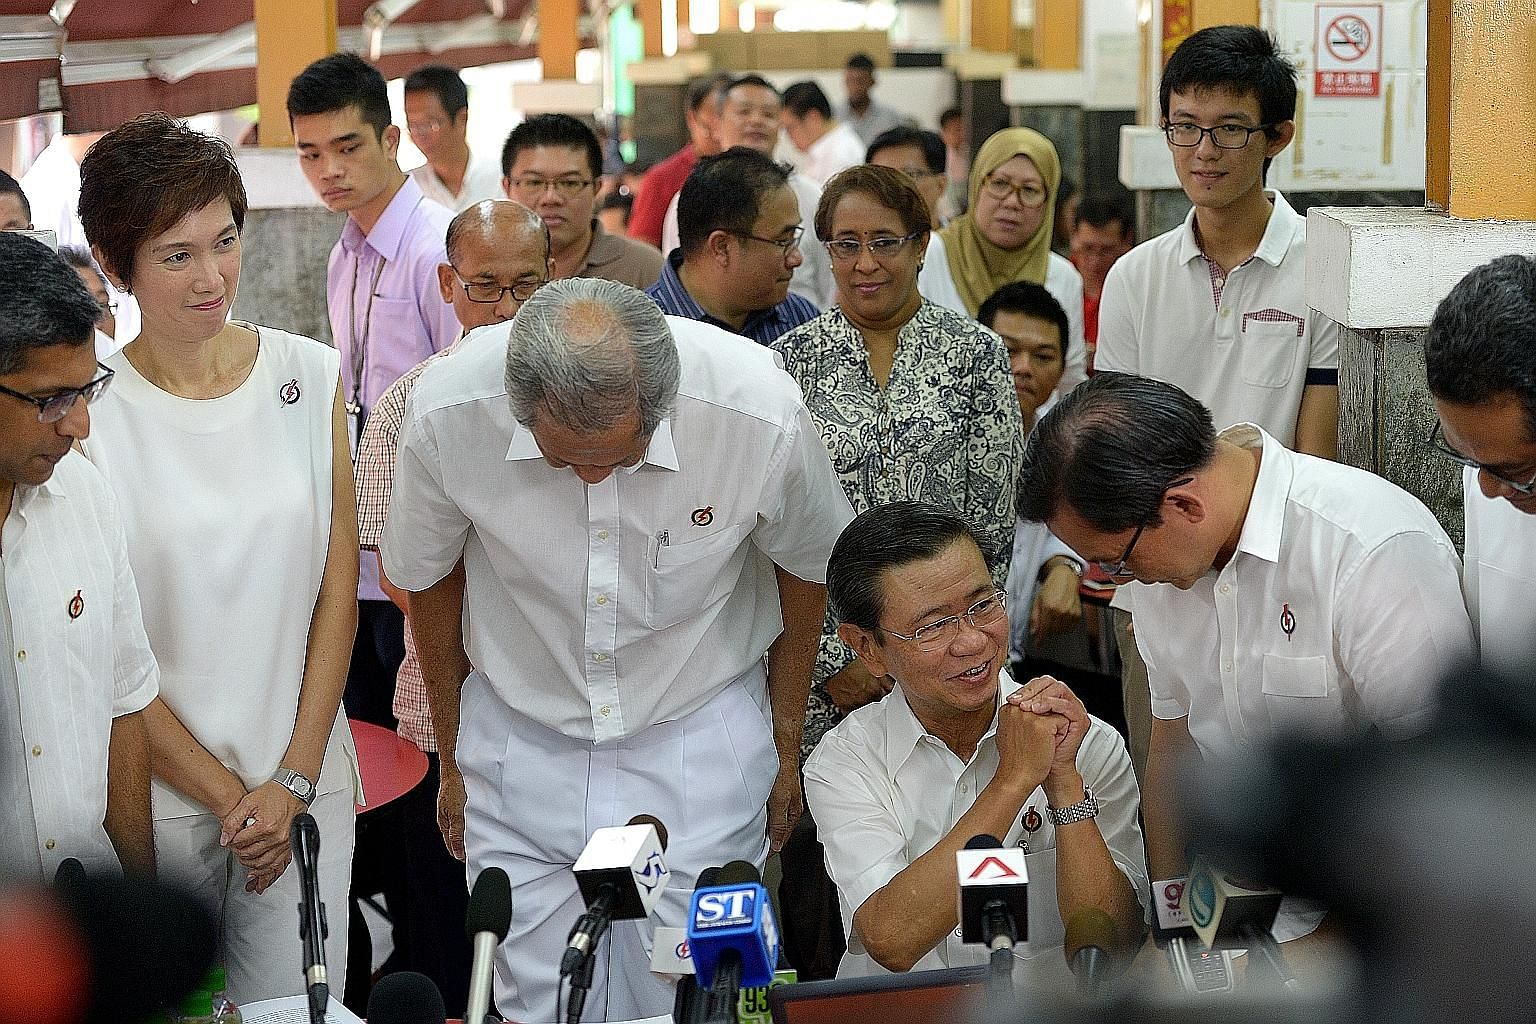 Mr Wong Kan Seng's PAP colleagues stood up and bowed to thank him for his contributions, including (from left) Mr Hri Kumar Nair, Mrs Josephine Teo, Dr Ng Eng Hen, Mr Chong Kee Hiong and Mr Zainudin Nordin.